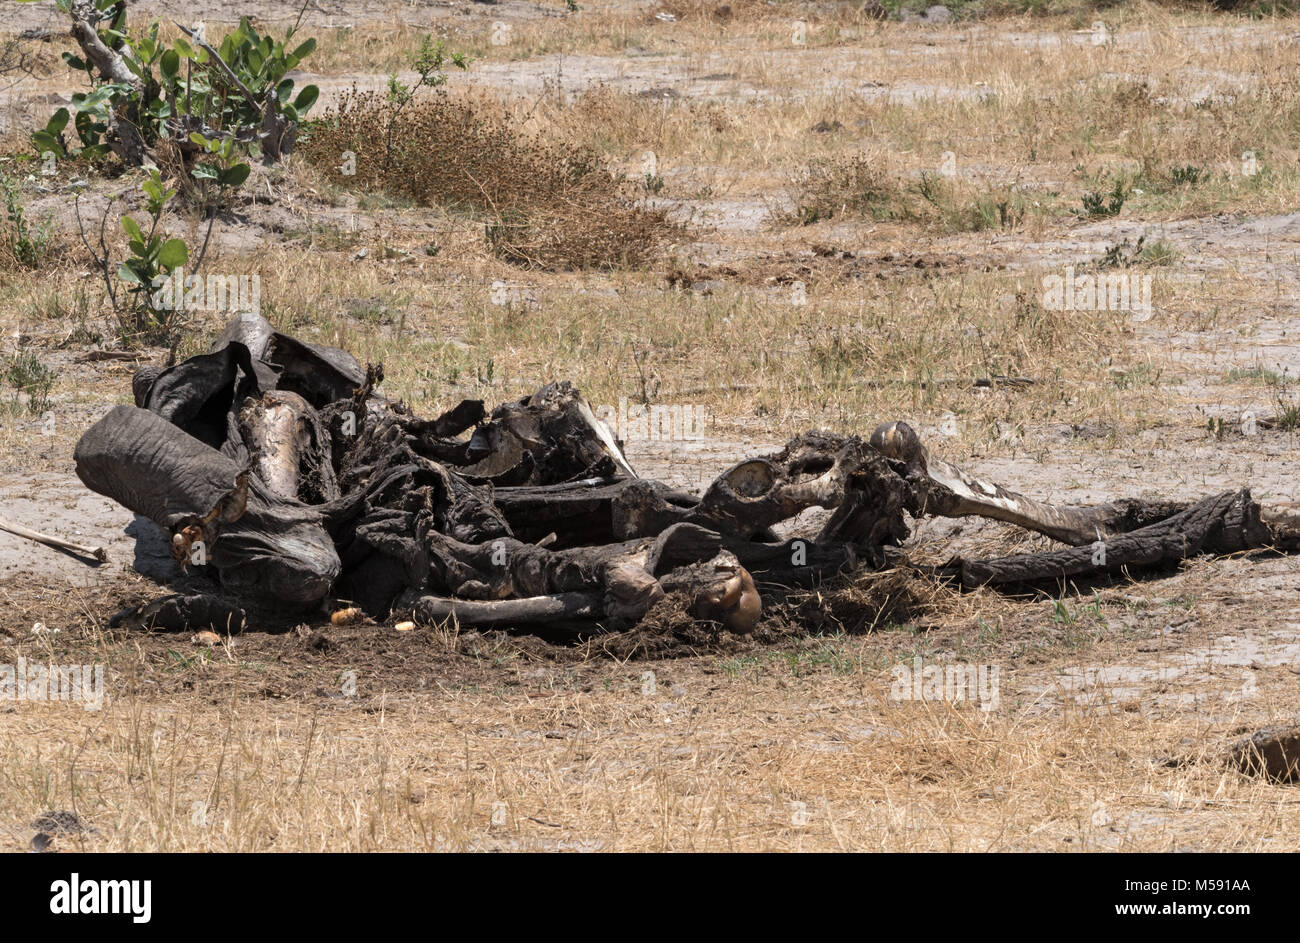 The mortal remains of an elephant in Chobe National Park, Botswana - Stock Image